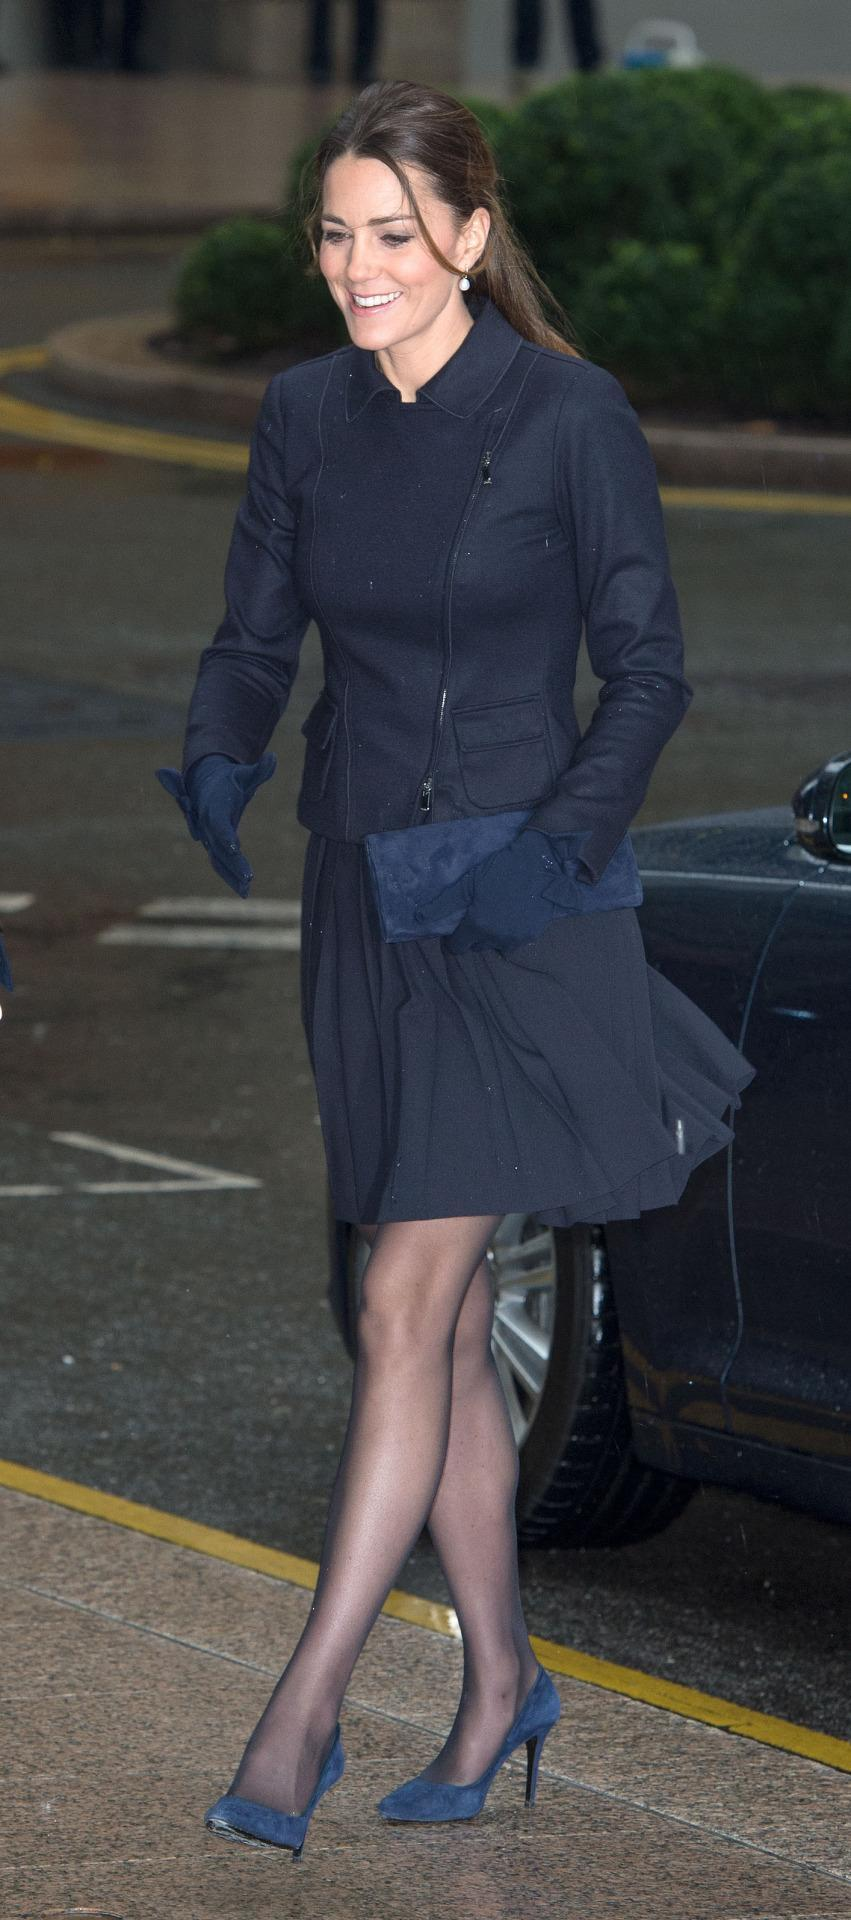 <p>Kate went for a navy ensemble for a charity event in London. Wearing a pleated skirt by Orla Kiely teamed with a Max Mara top, the Duchess carried a matching bag by Stuart Weitzman and Alexander McQueen pumps. </p><p><i>[Photo: PA]</i></p>